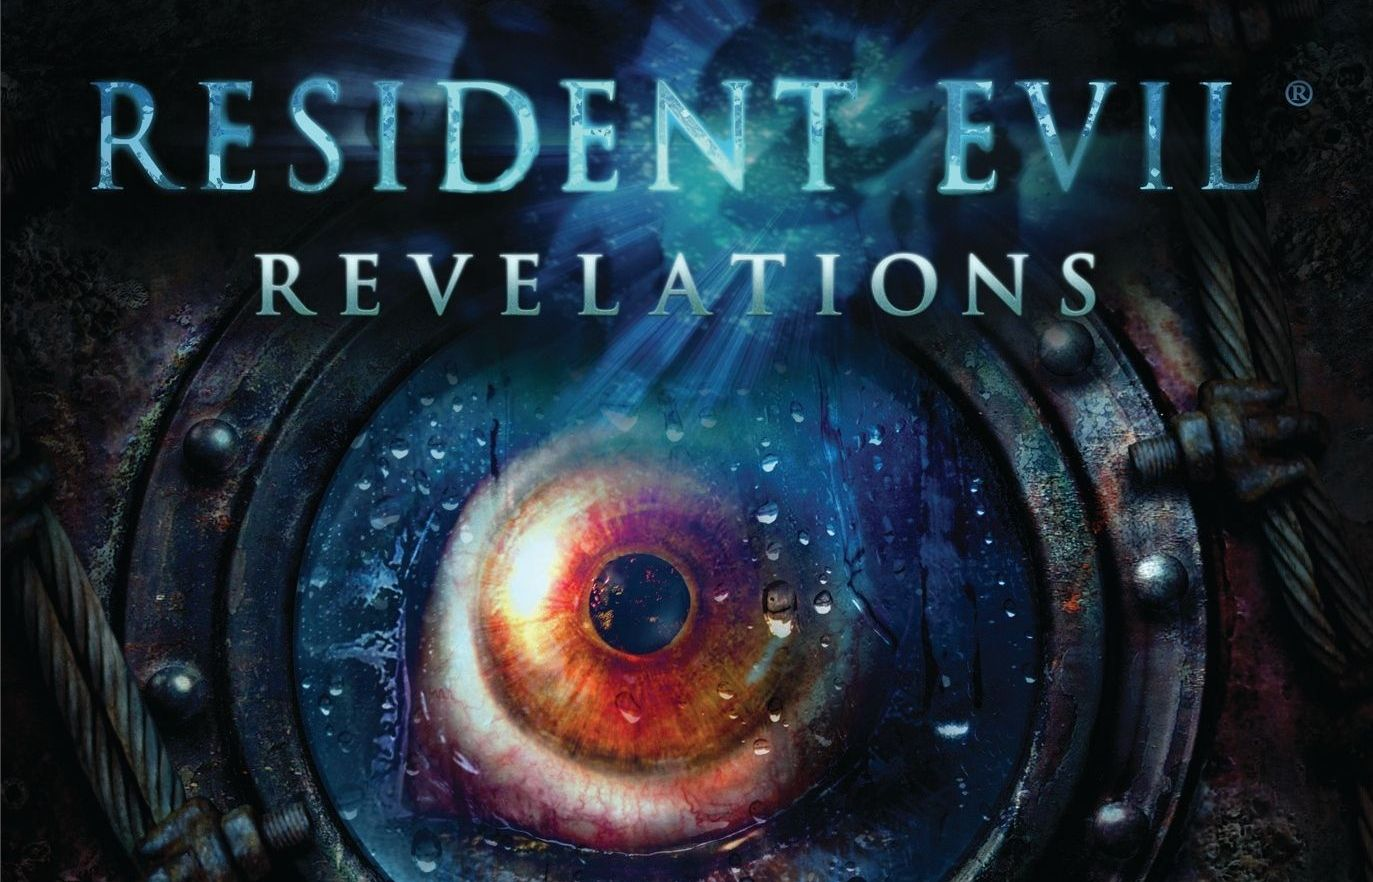 Resident Evil Revelations pc wii u xbox ps3